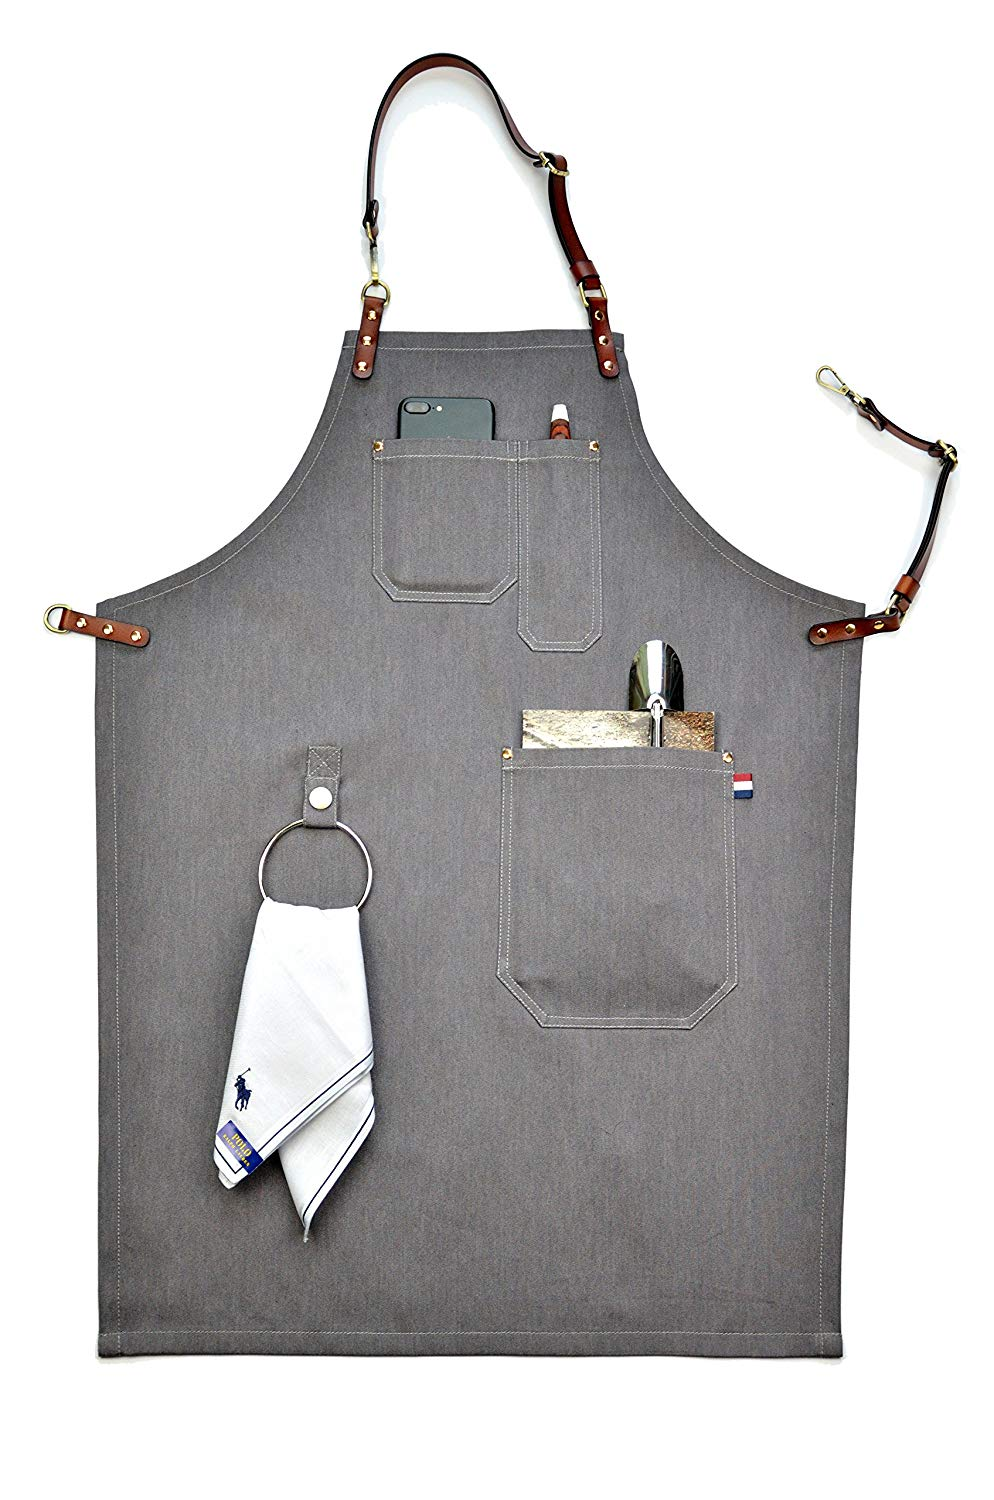 Professional Grade Chef Apron VANORIG for Kitchen BBQ Painting Grill and Cafe with Towel Loop + Tool Pockets + Quick Release Buckle (S, b)